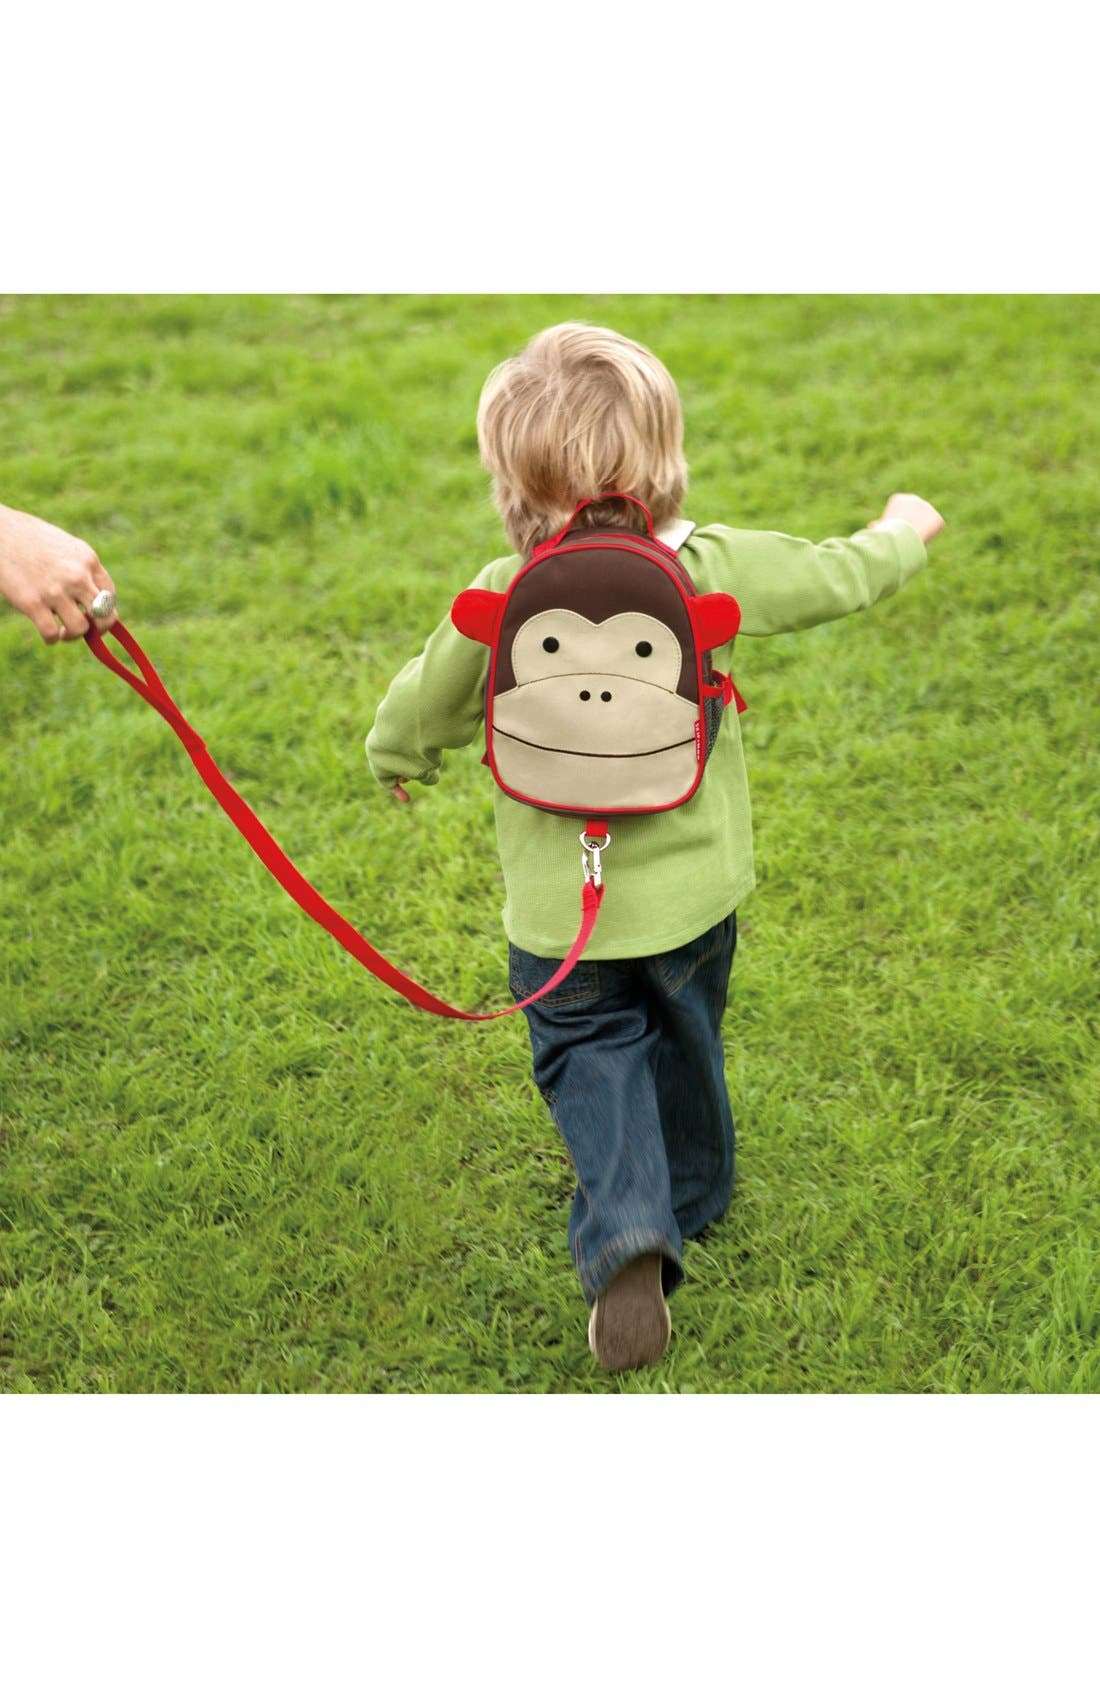 'Zoo' Safety Harness Backpack,                             Alternate thumbnail 4, color,                             MONKEY